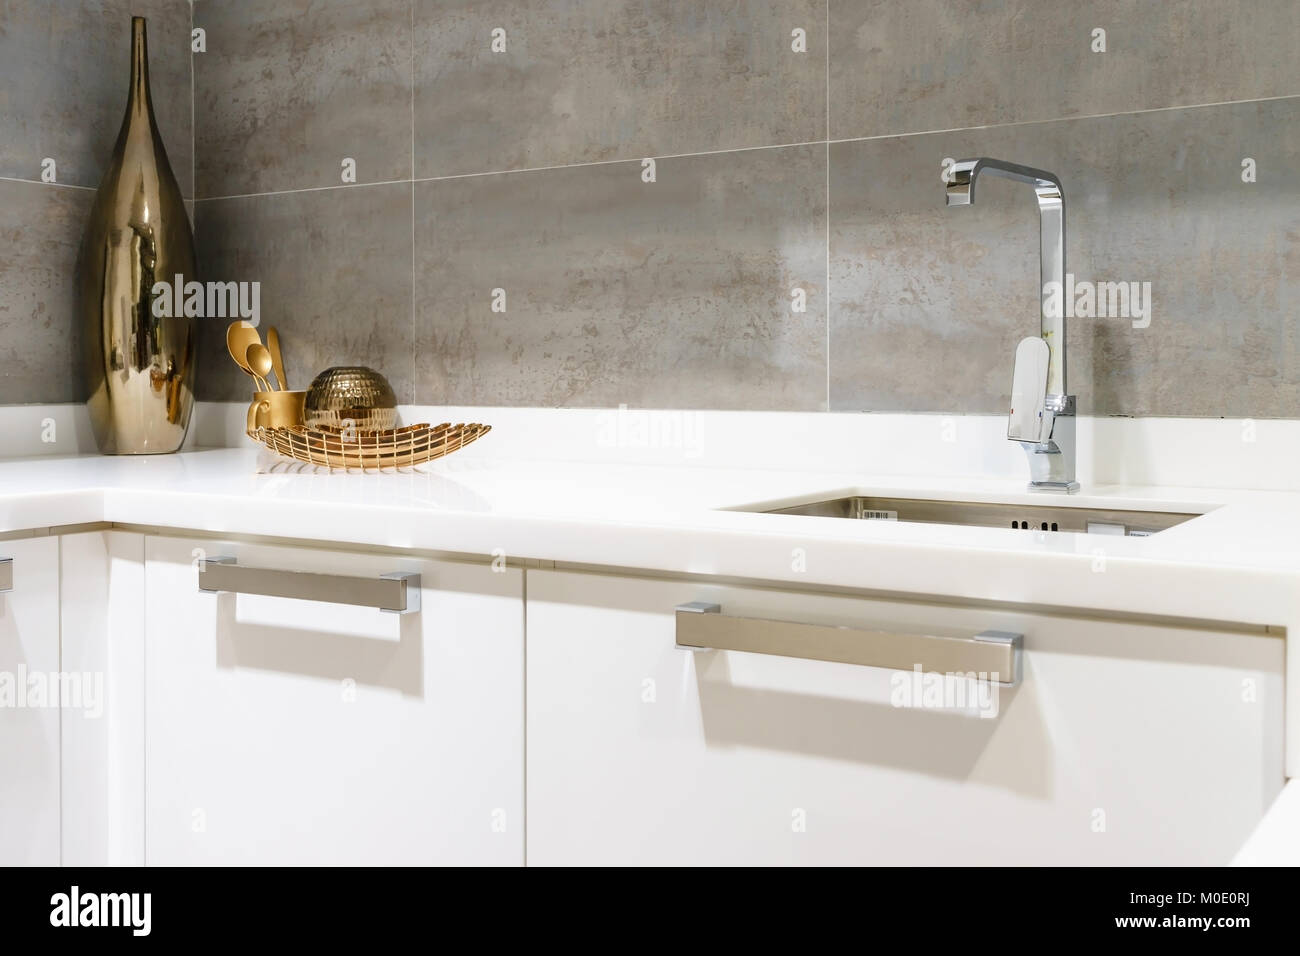 Modern White Kitchen Countertop With White Granite Custom Counter Stock Photo Alamy